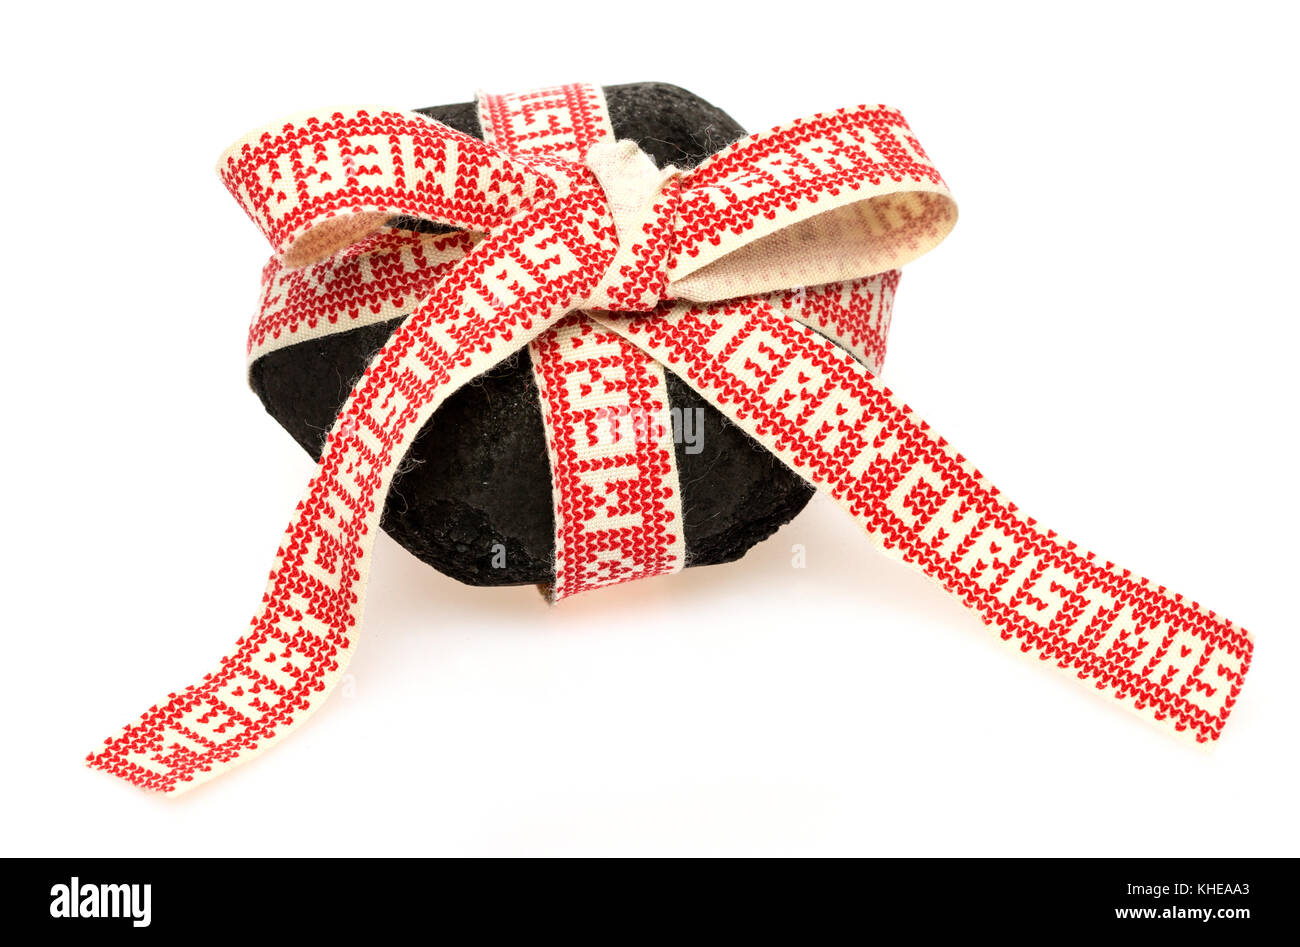 A piece of coal wrapped for a Christmas present - Stock Image